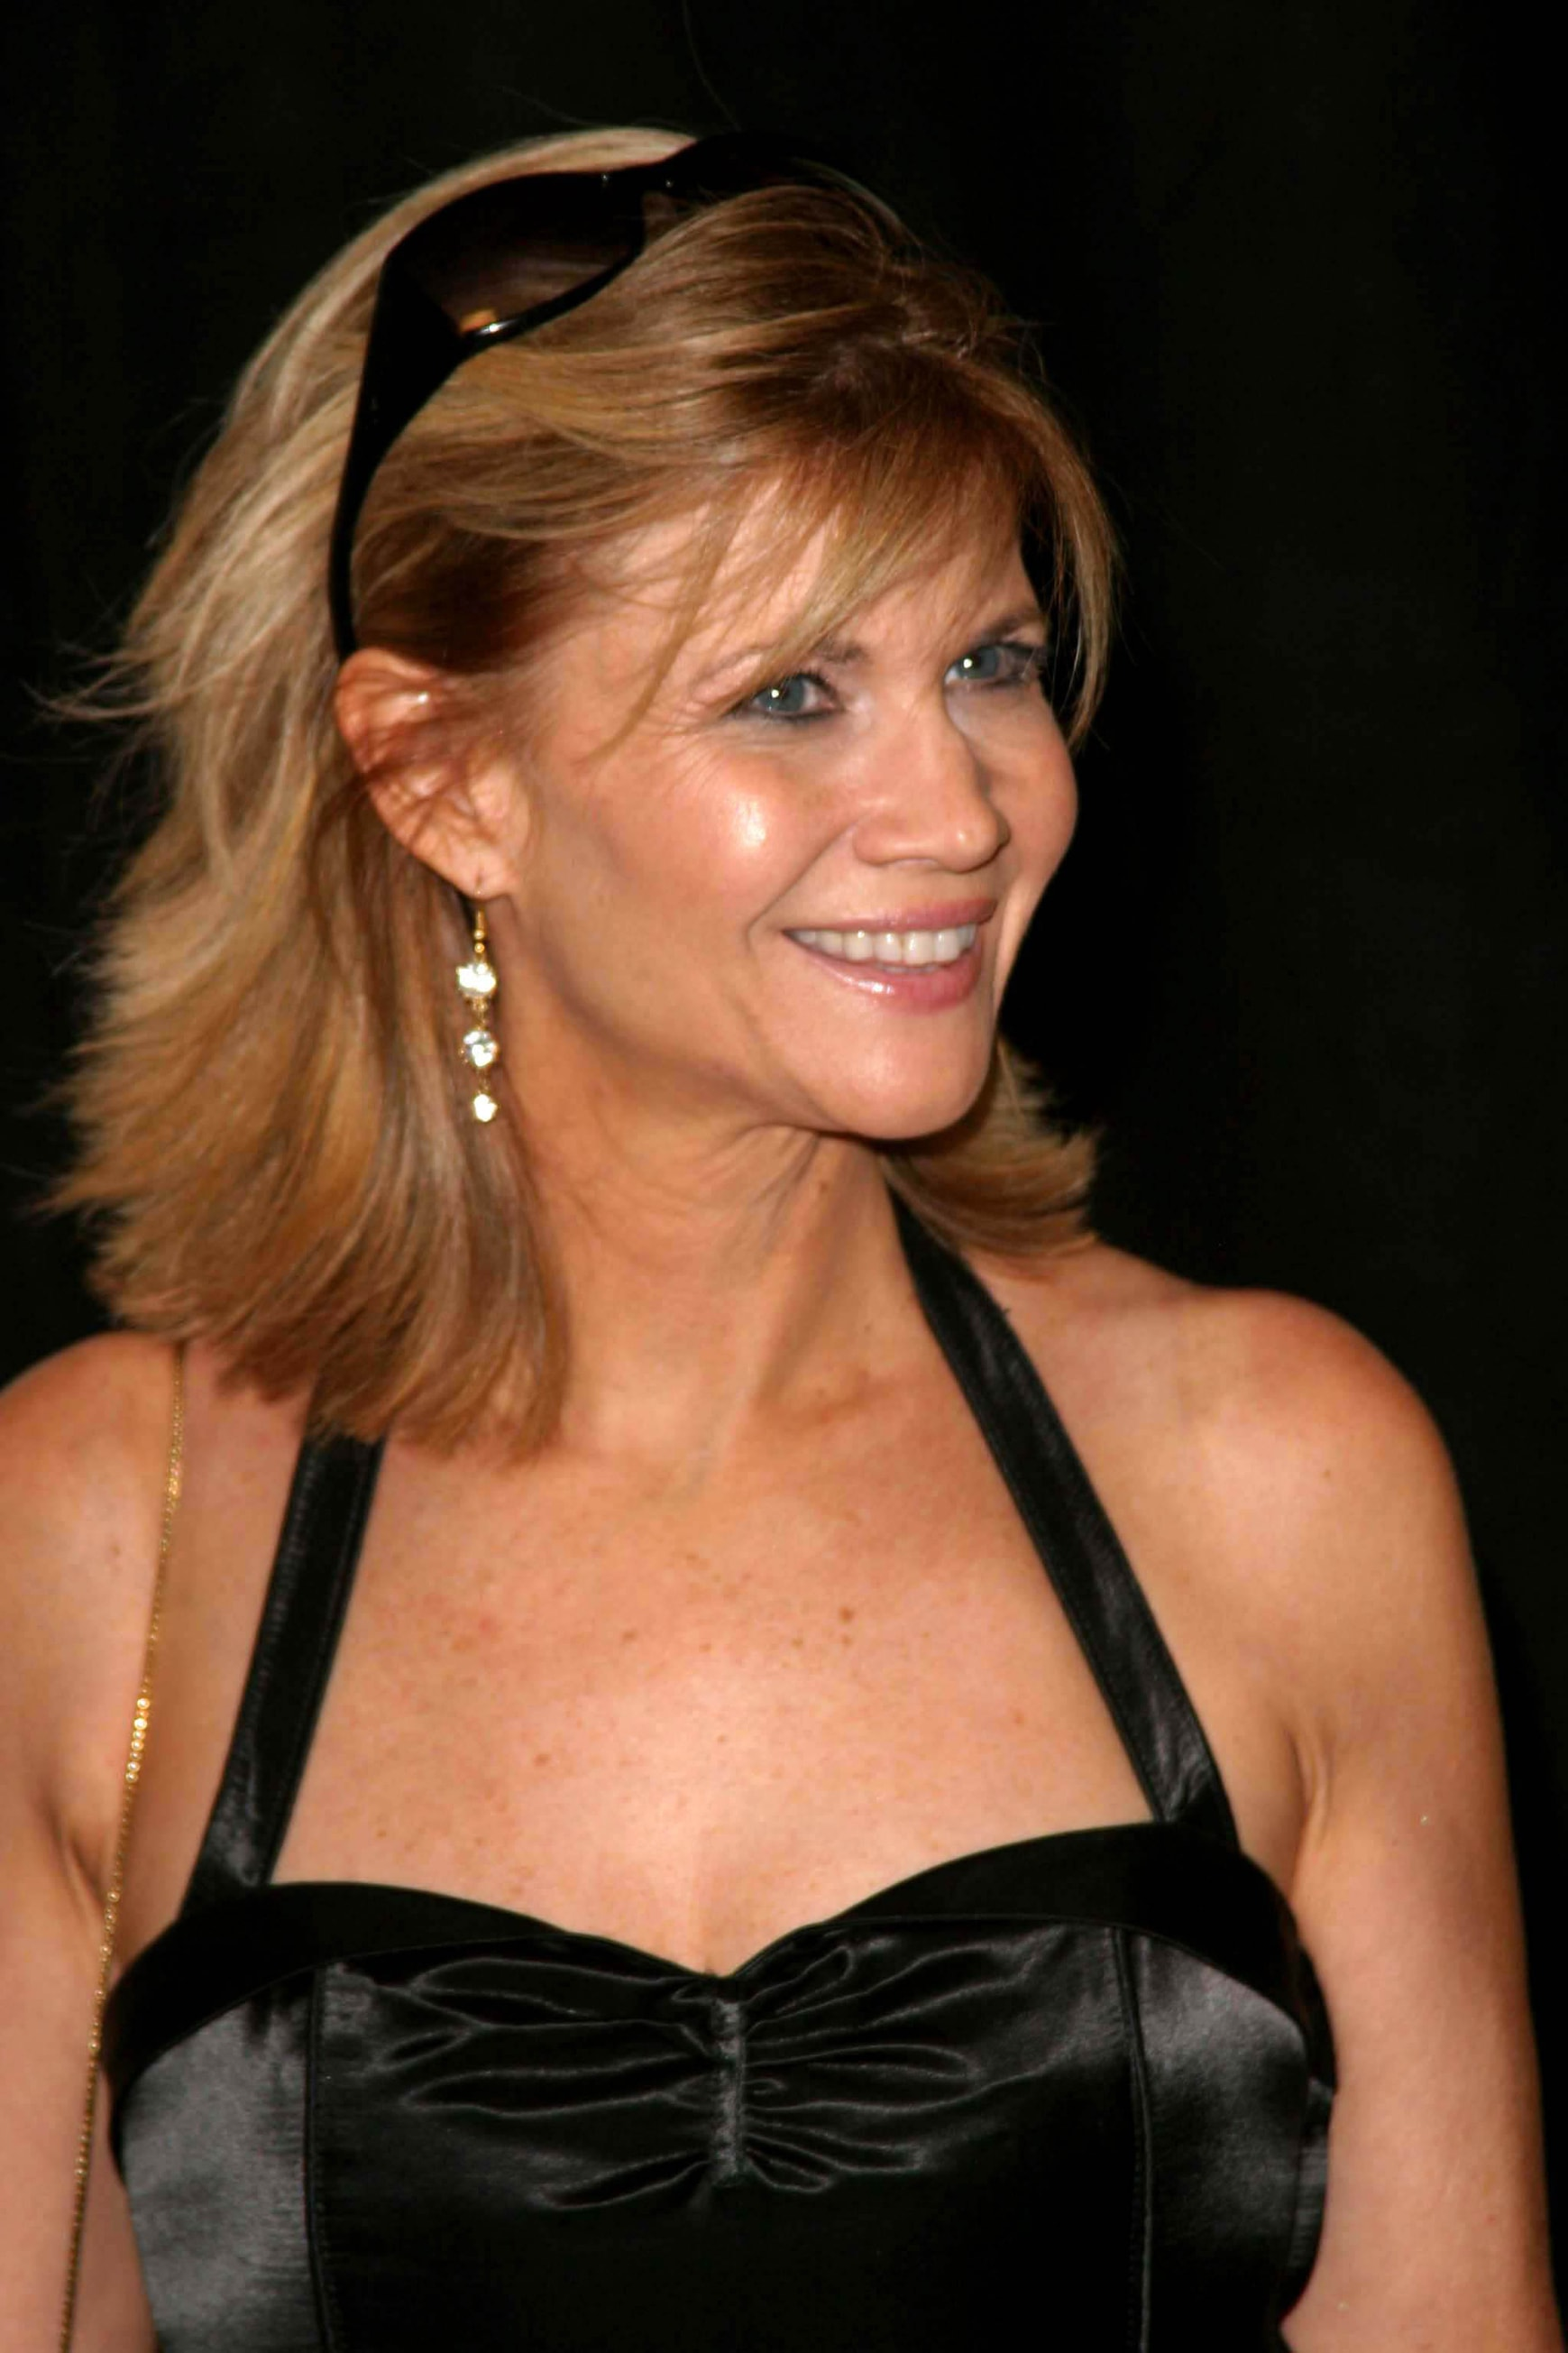 Markie Post HQ wallpapers